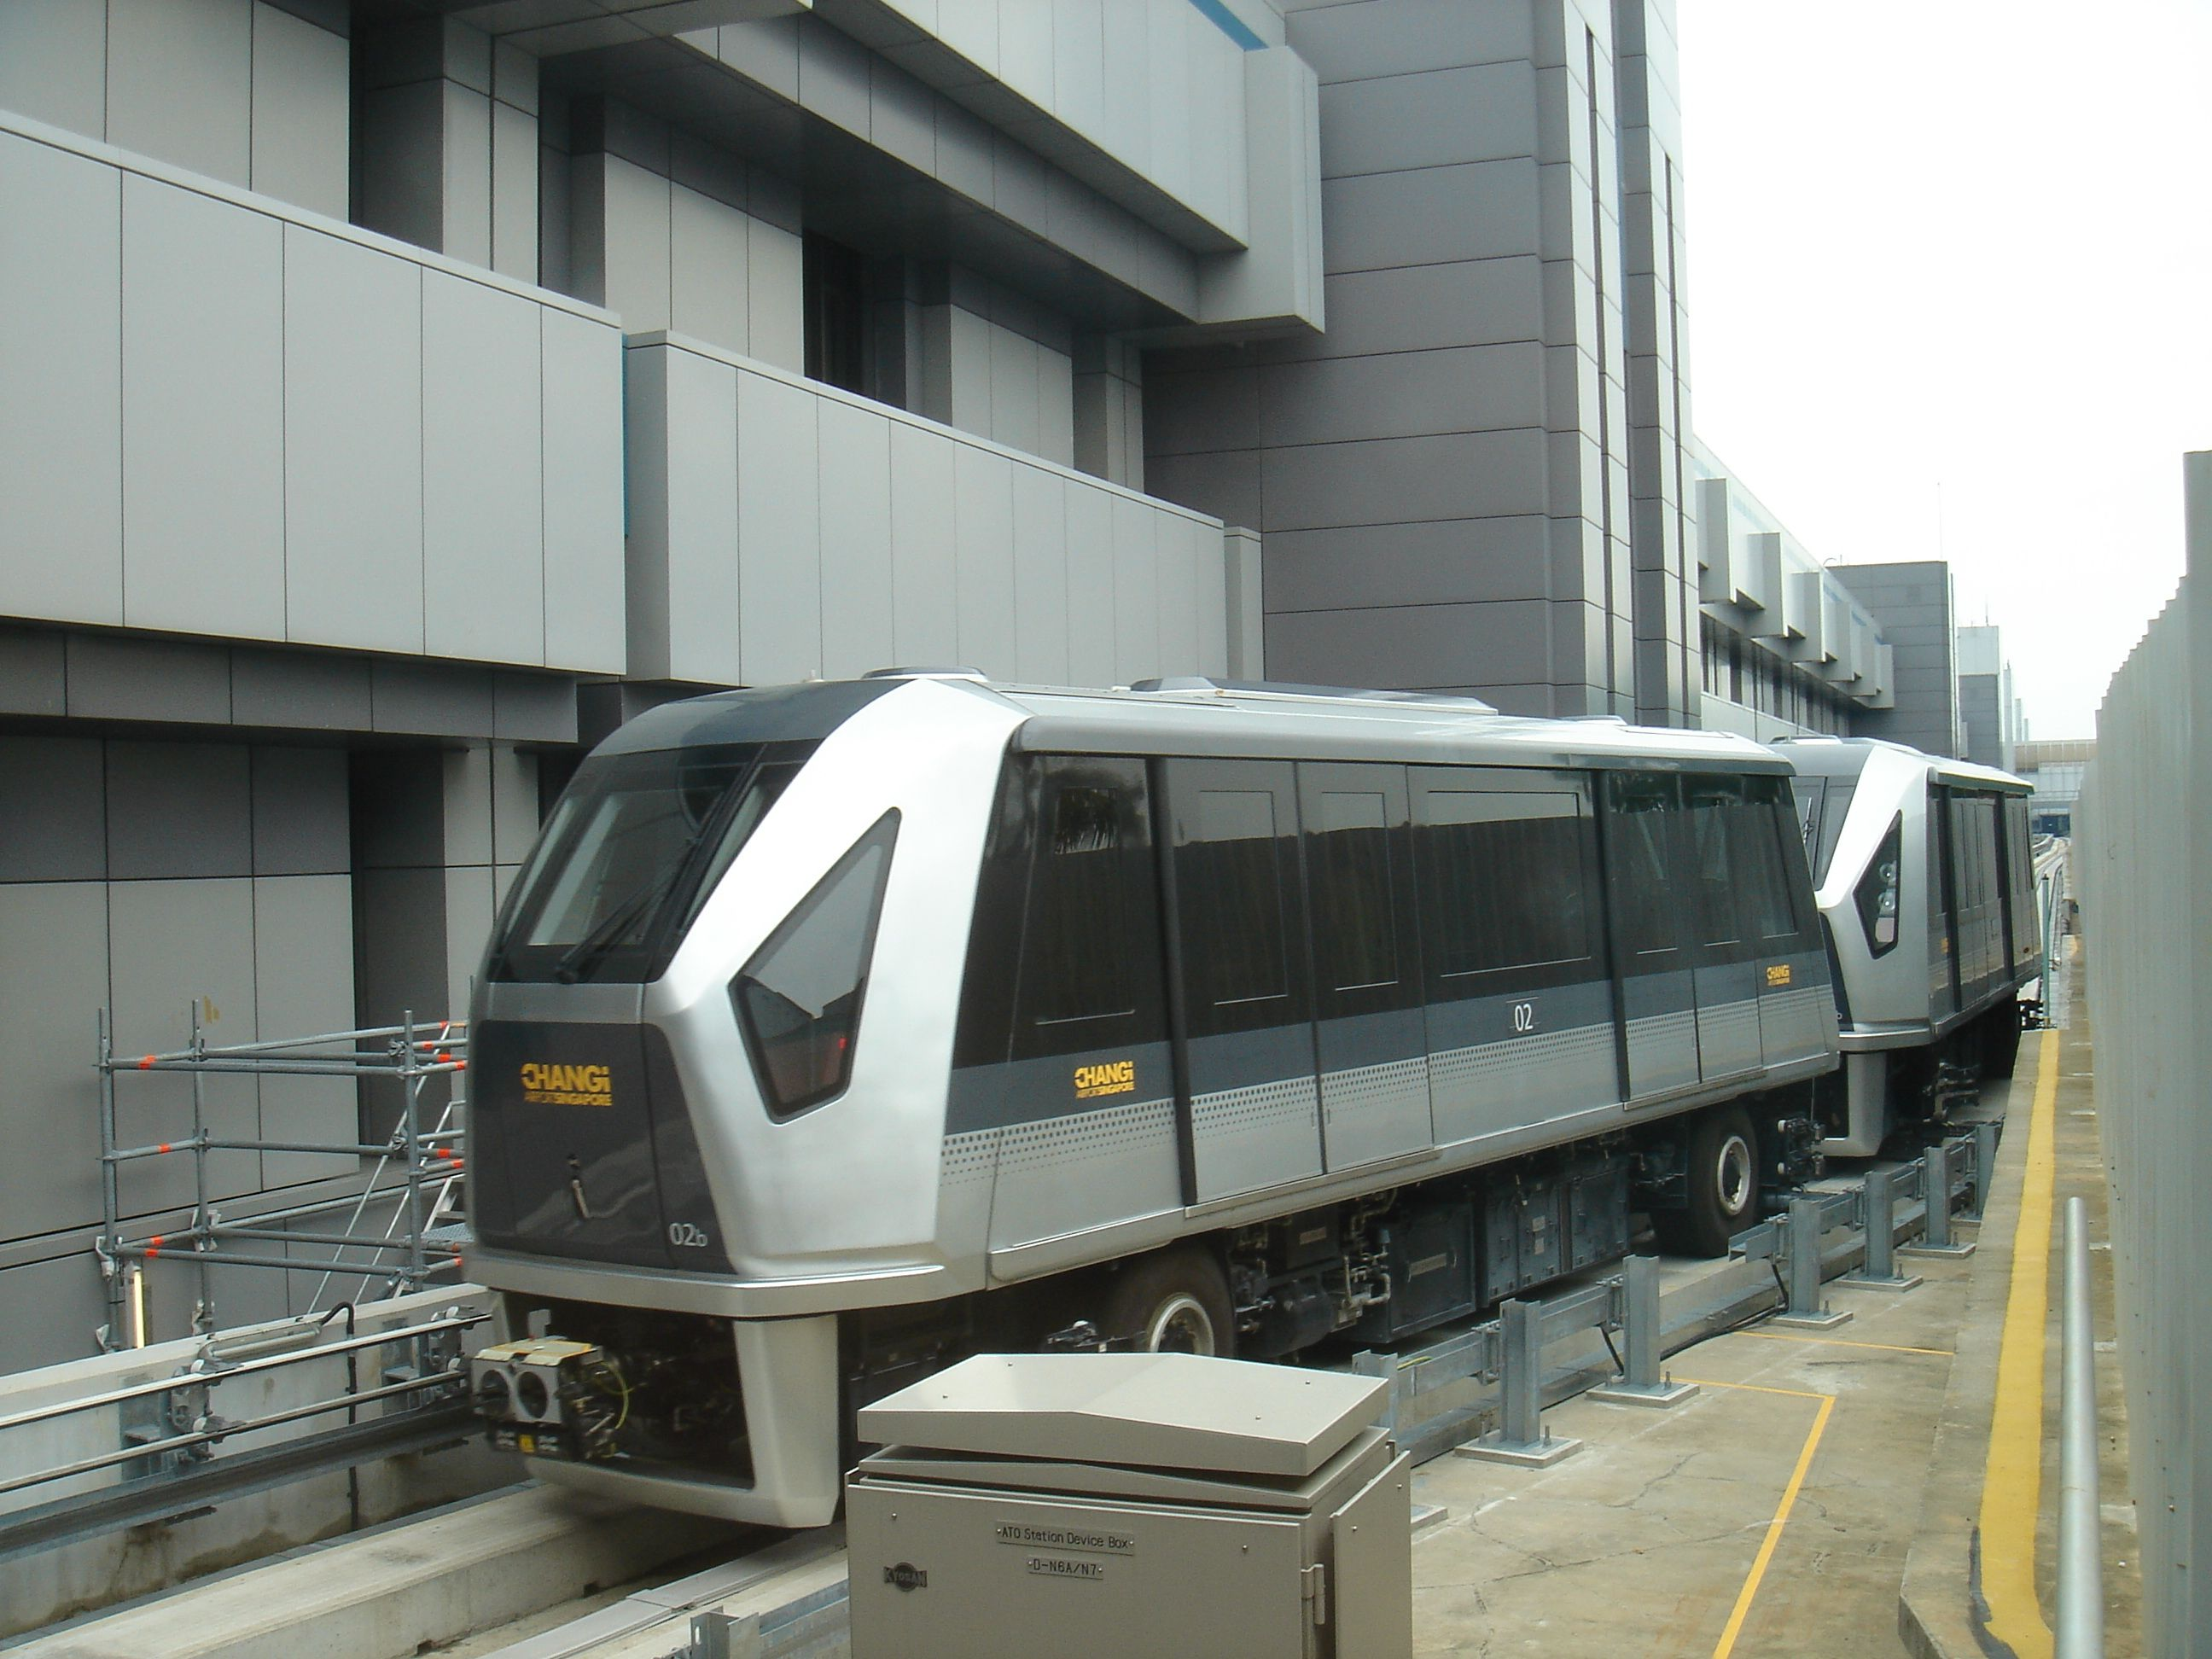 Mitsubishi Crystal Mover on the SkyTrain system at Changi Airport